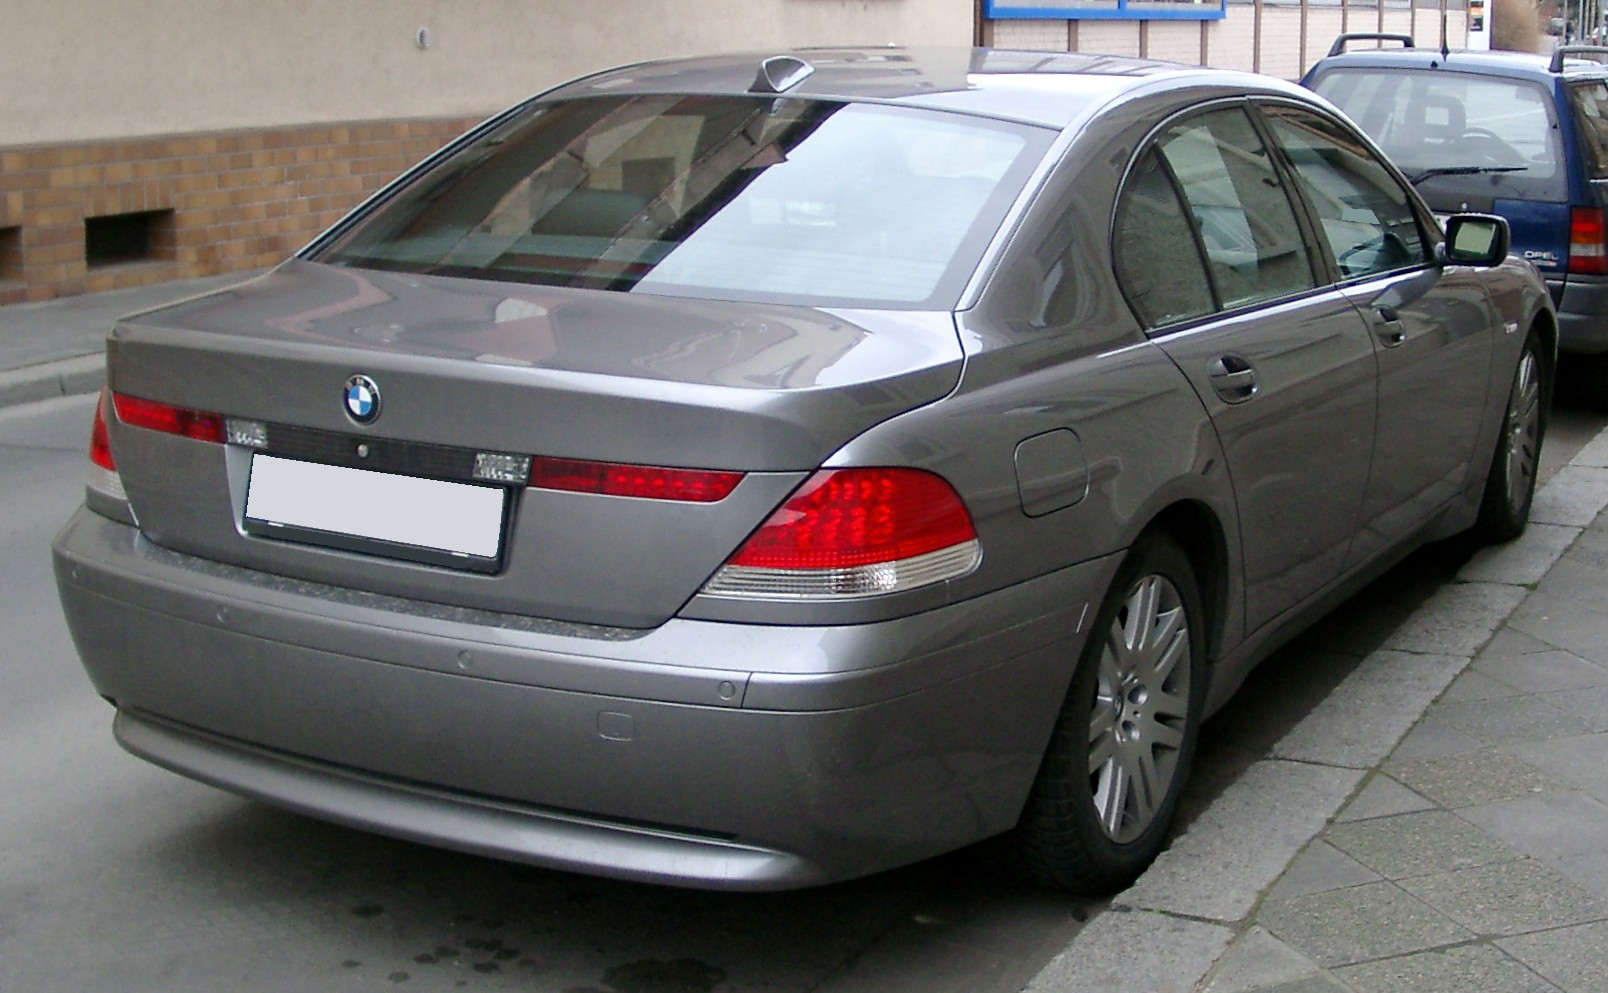 [Immagine: BMW_E65_rear_20080121.jpg]